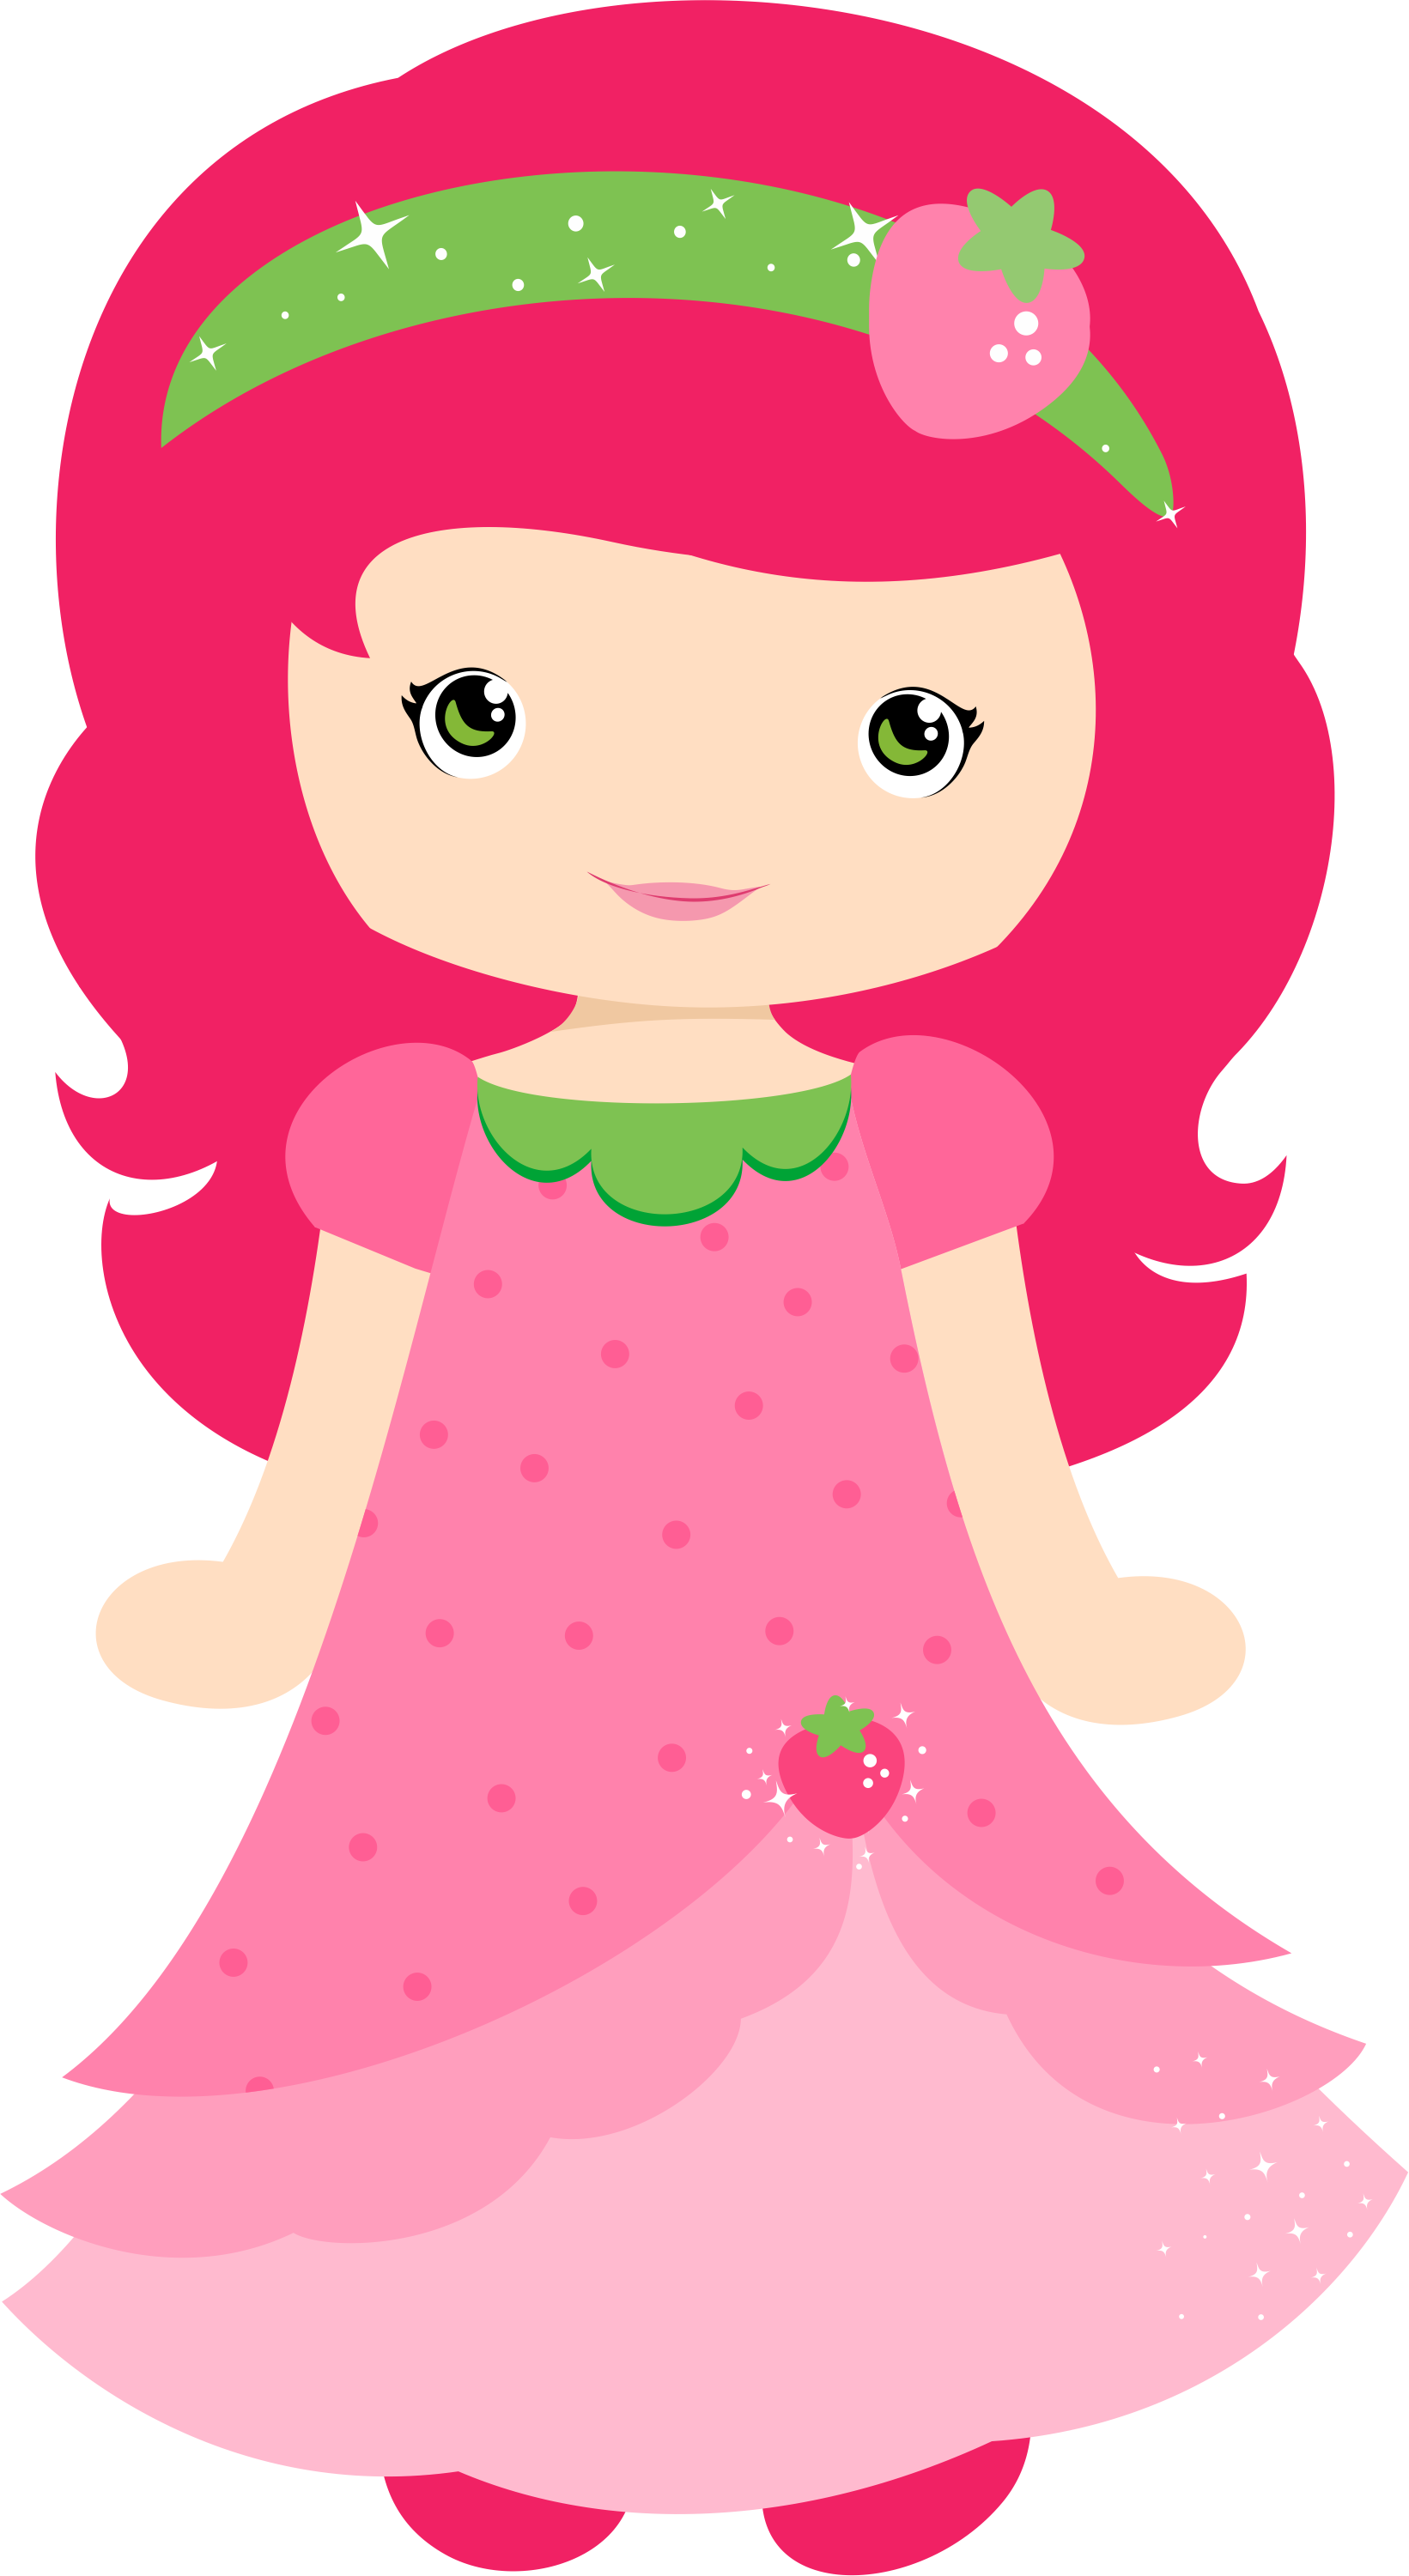 Strawberries clipart princess. Iidg k l i